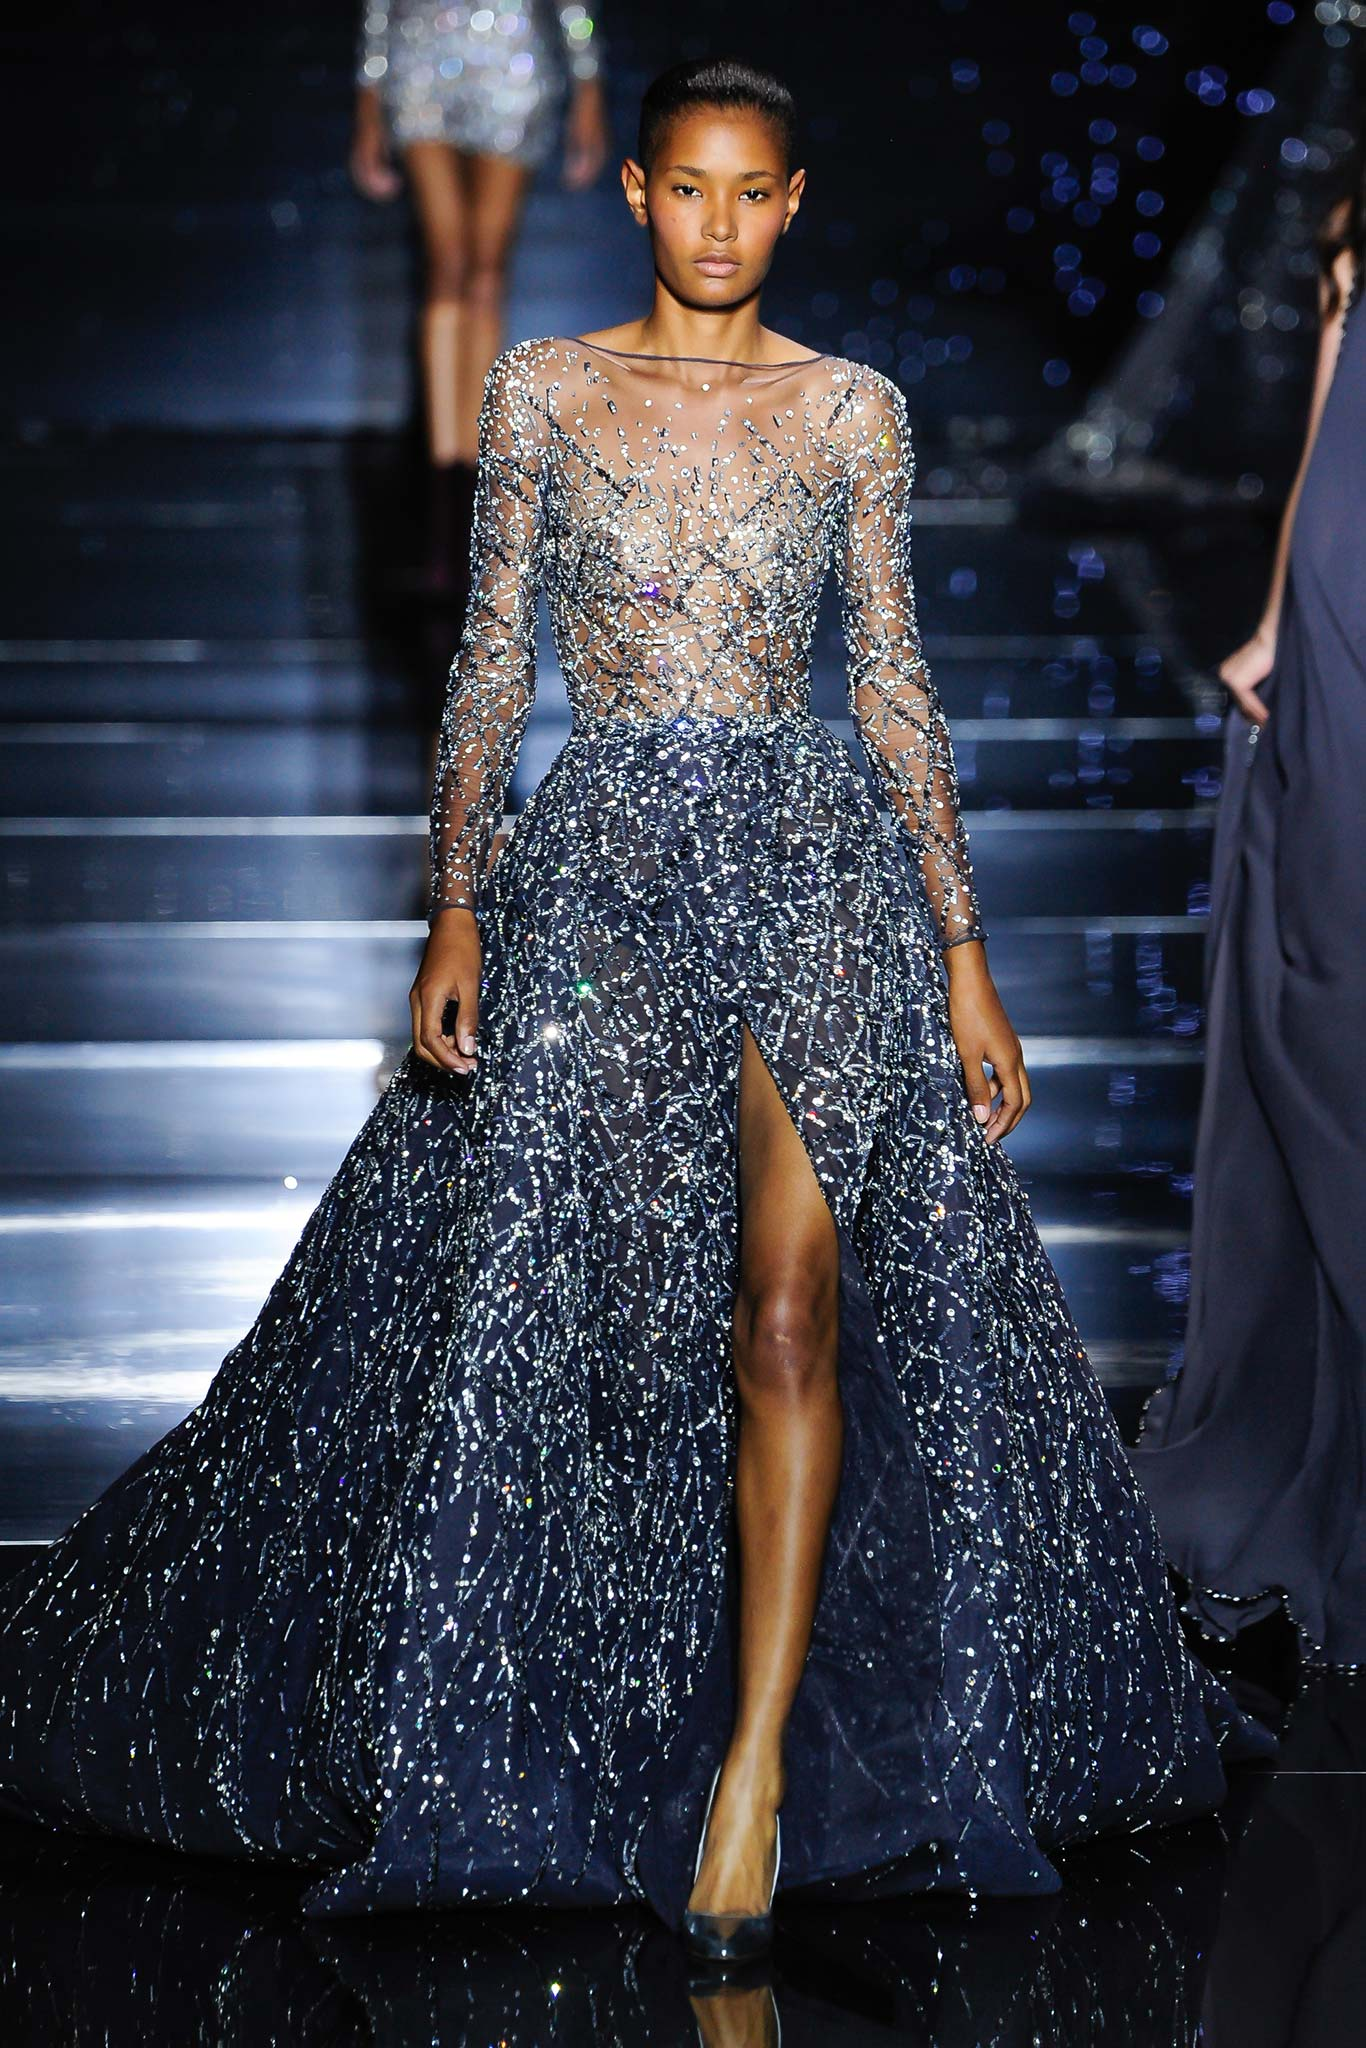 Zuhair murad haute couture f w 2015 paris graveravens for Haute couture fashion